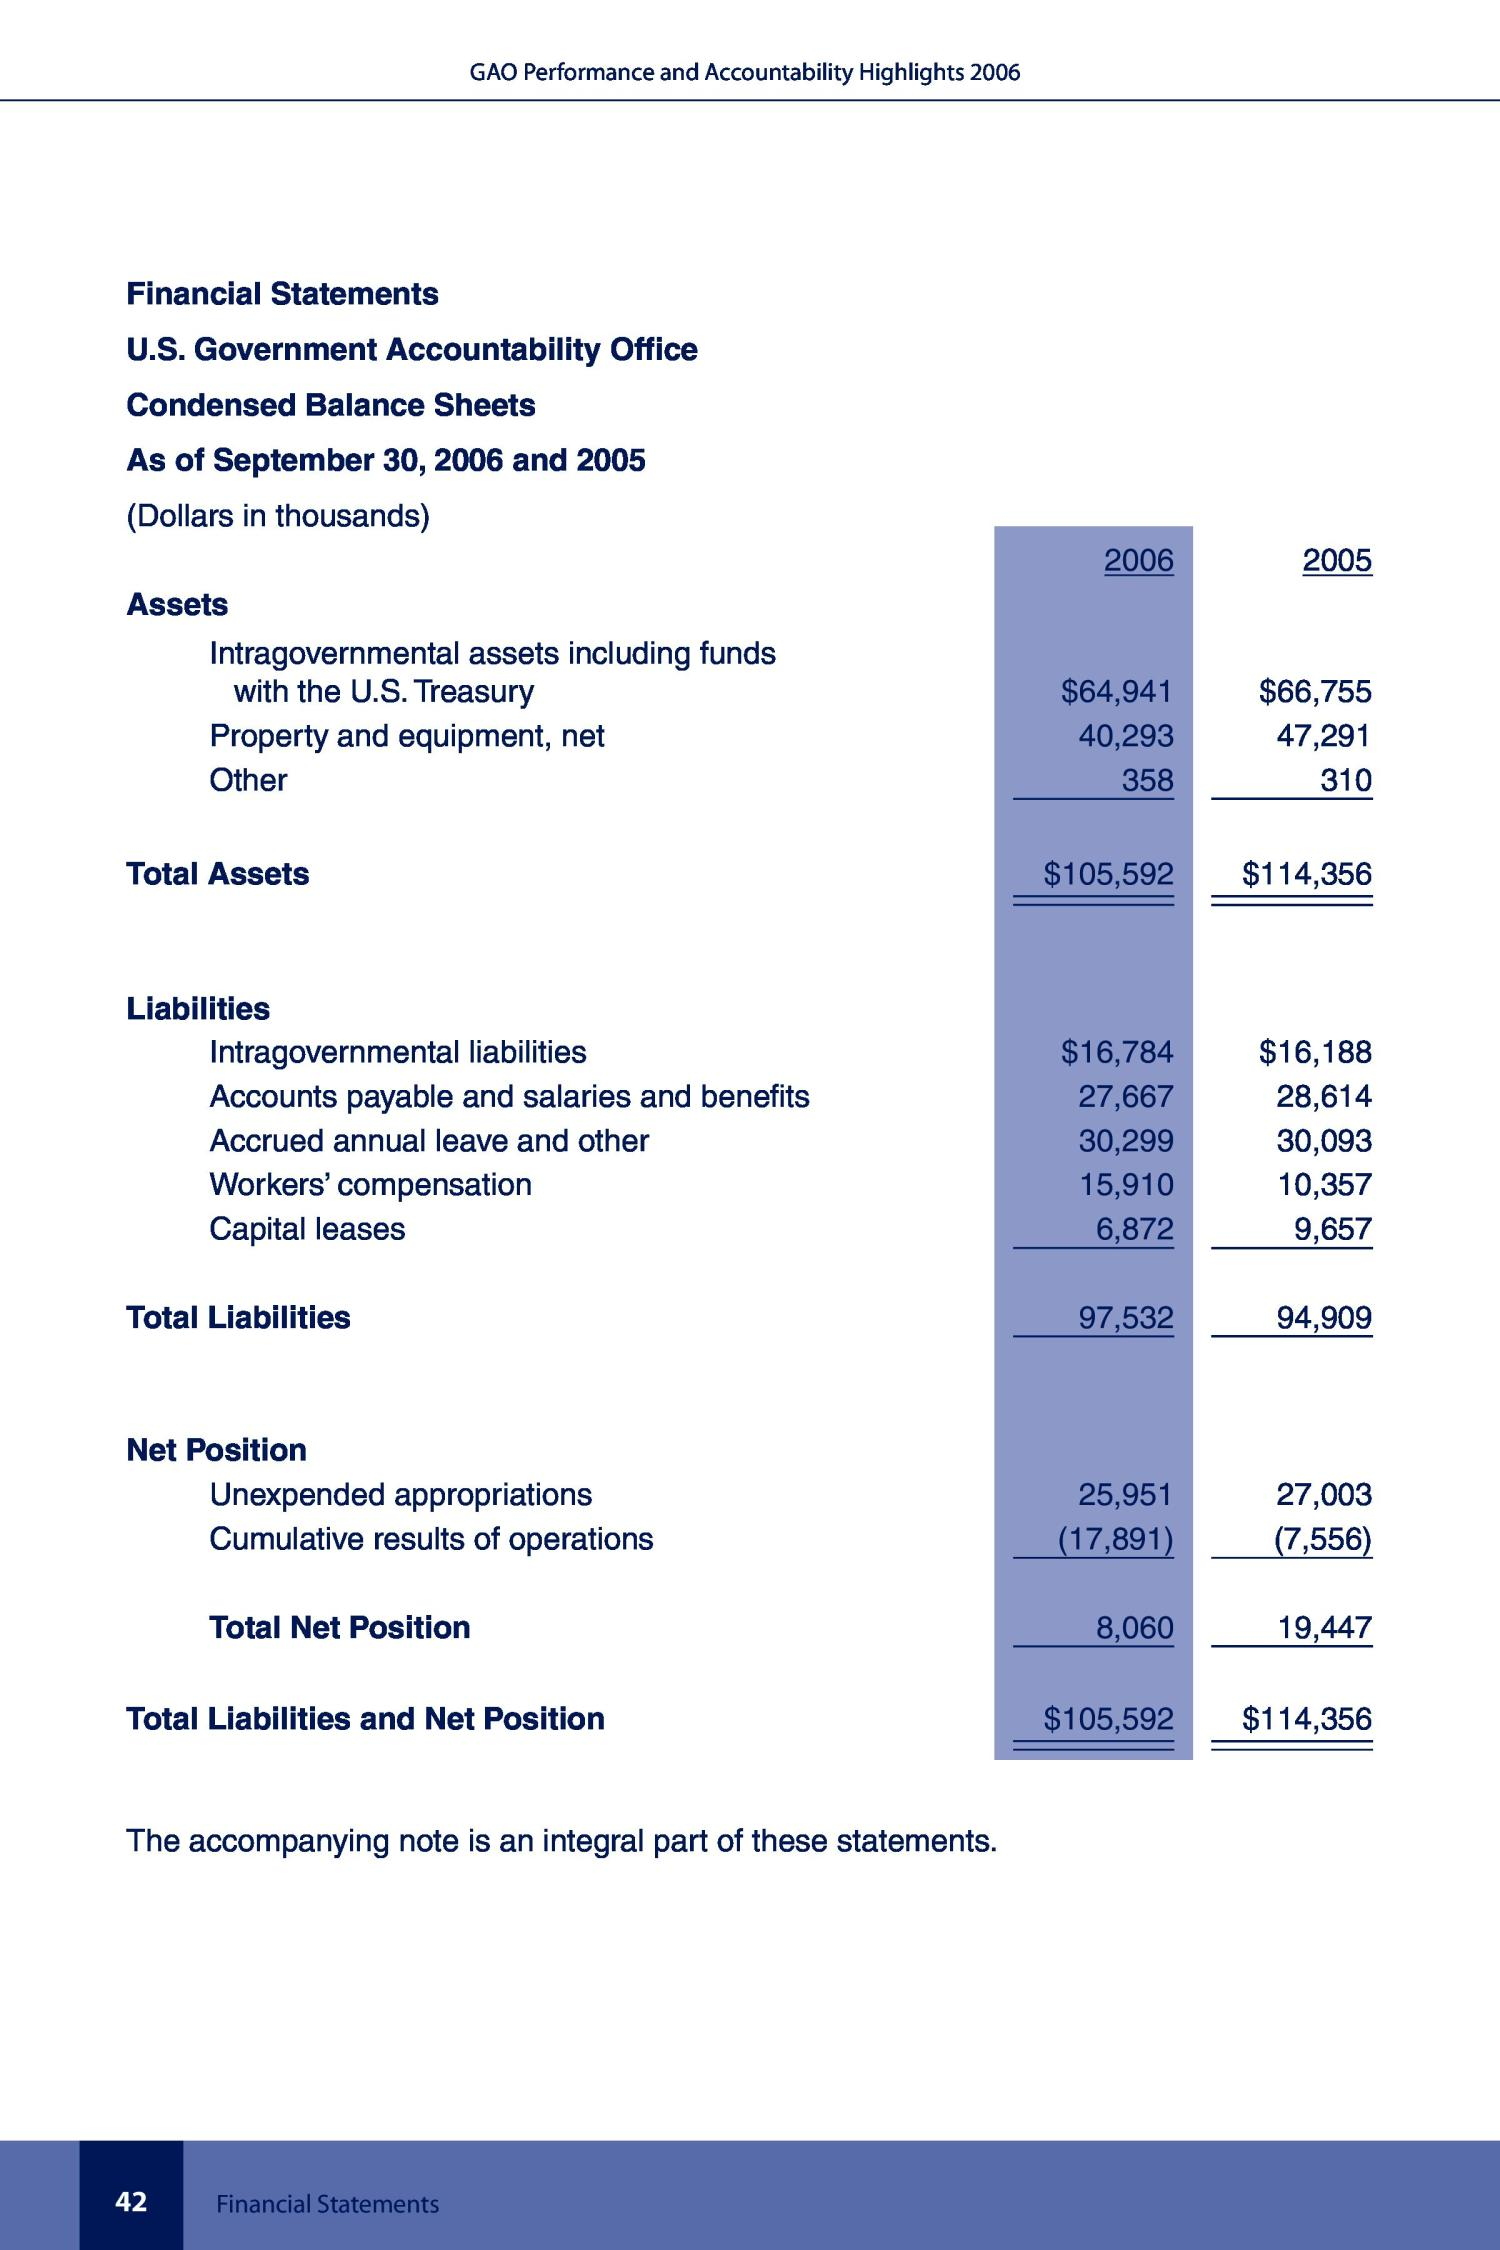 Performance and Accountability Highlights Fiscal Year 2006                                                                                                      [Sequence #]: 44 of 56